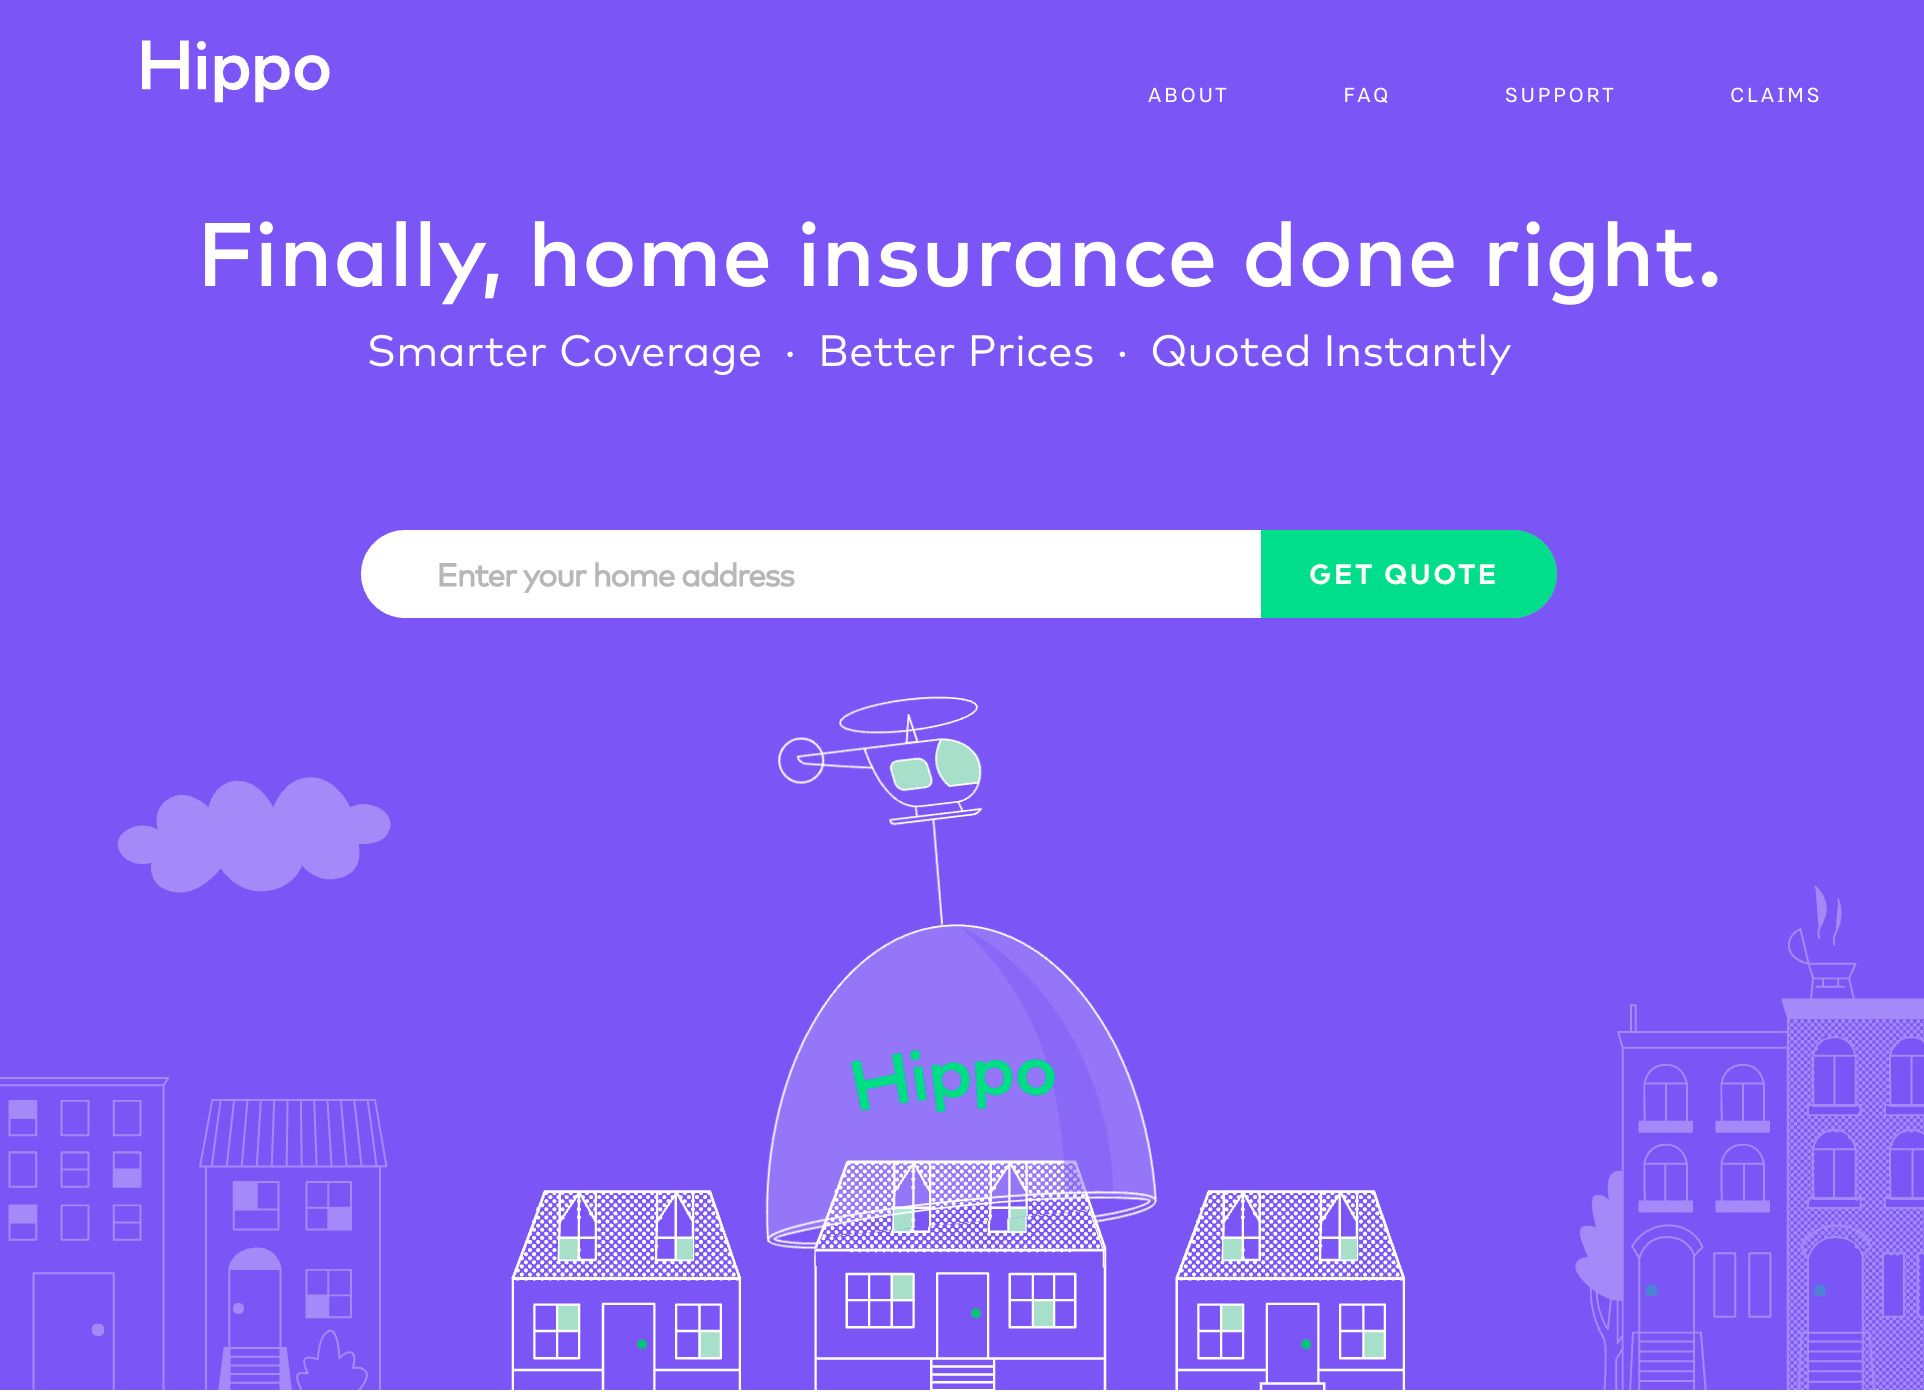 Hippo Provides Comprehensive Homeowners Insurance At Affordable